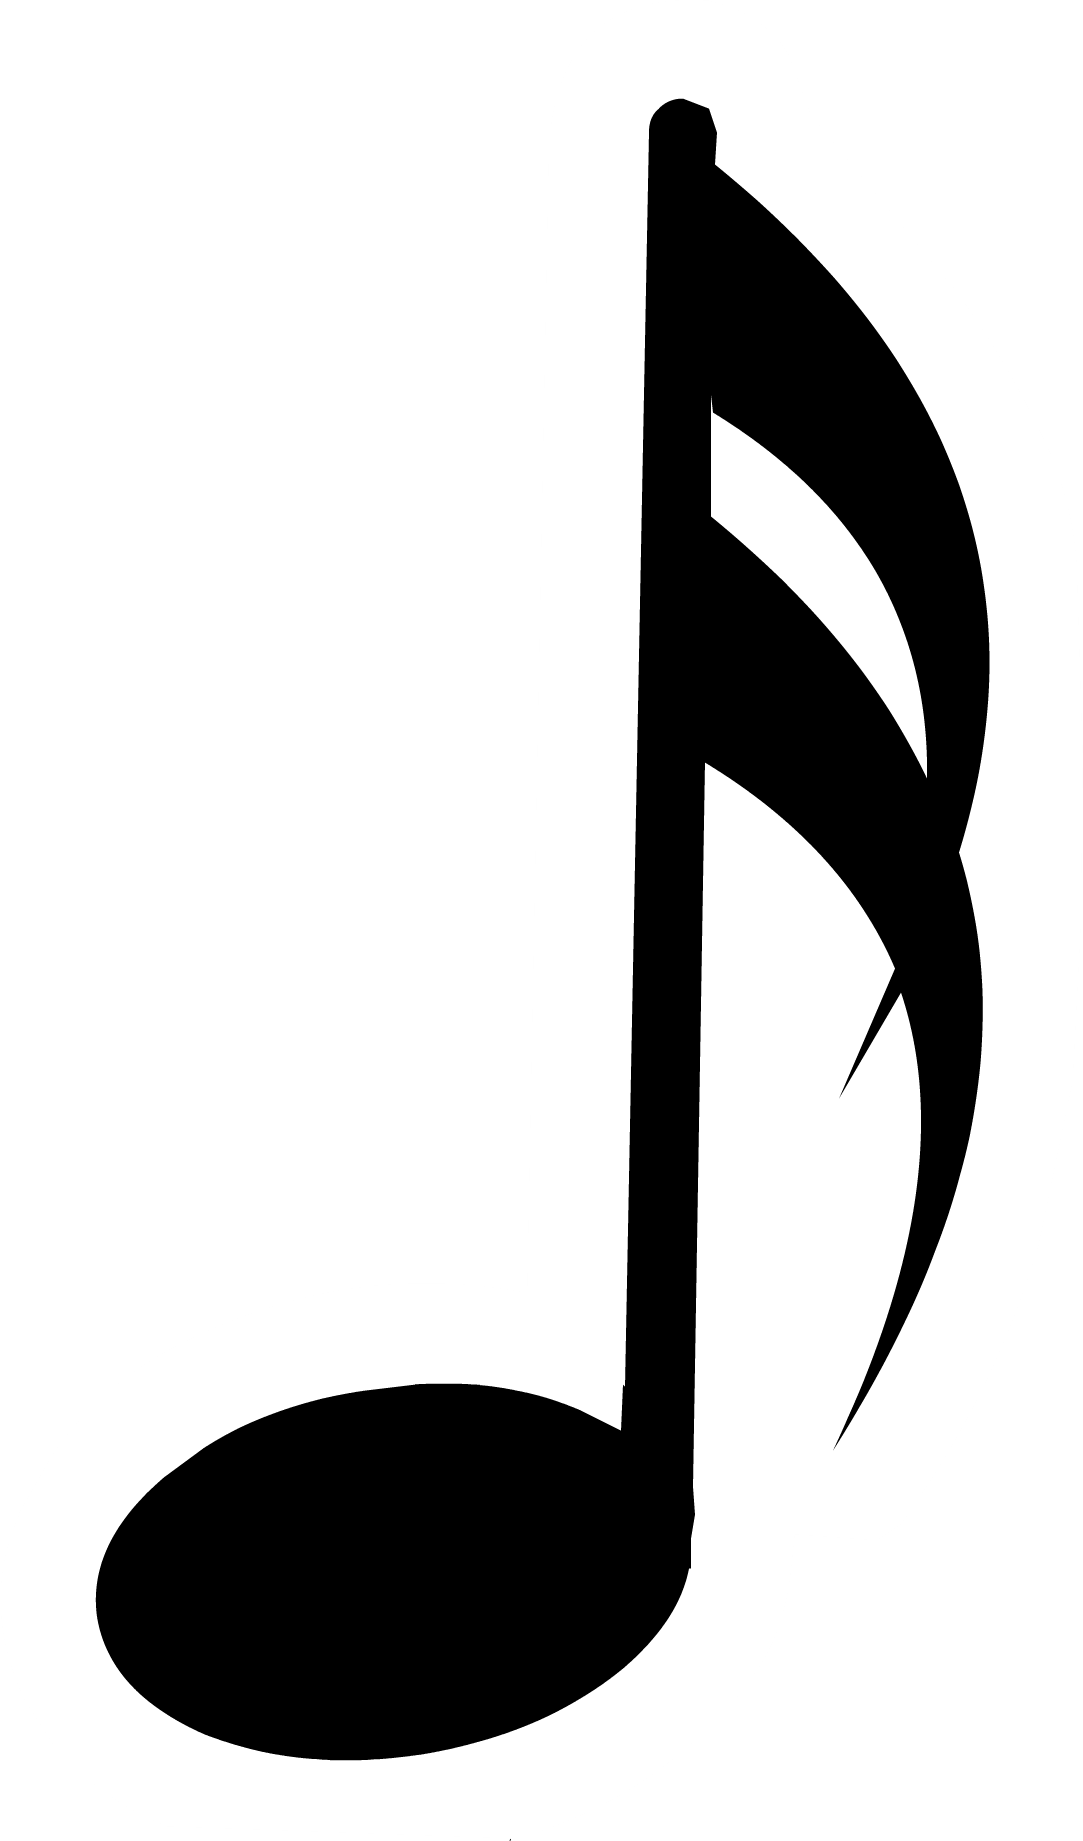 Music Note Png - ClipArt Best